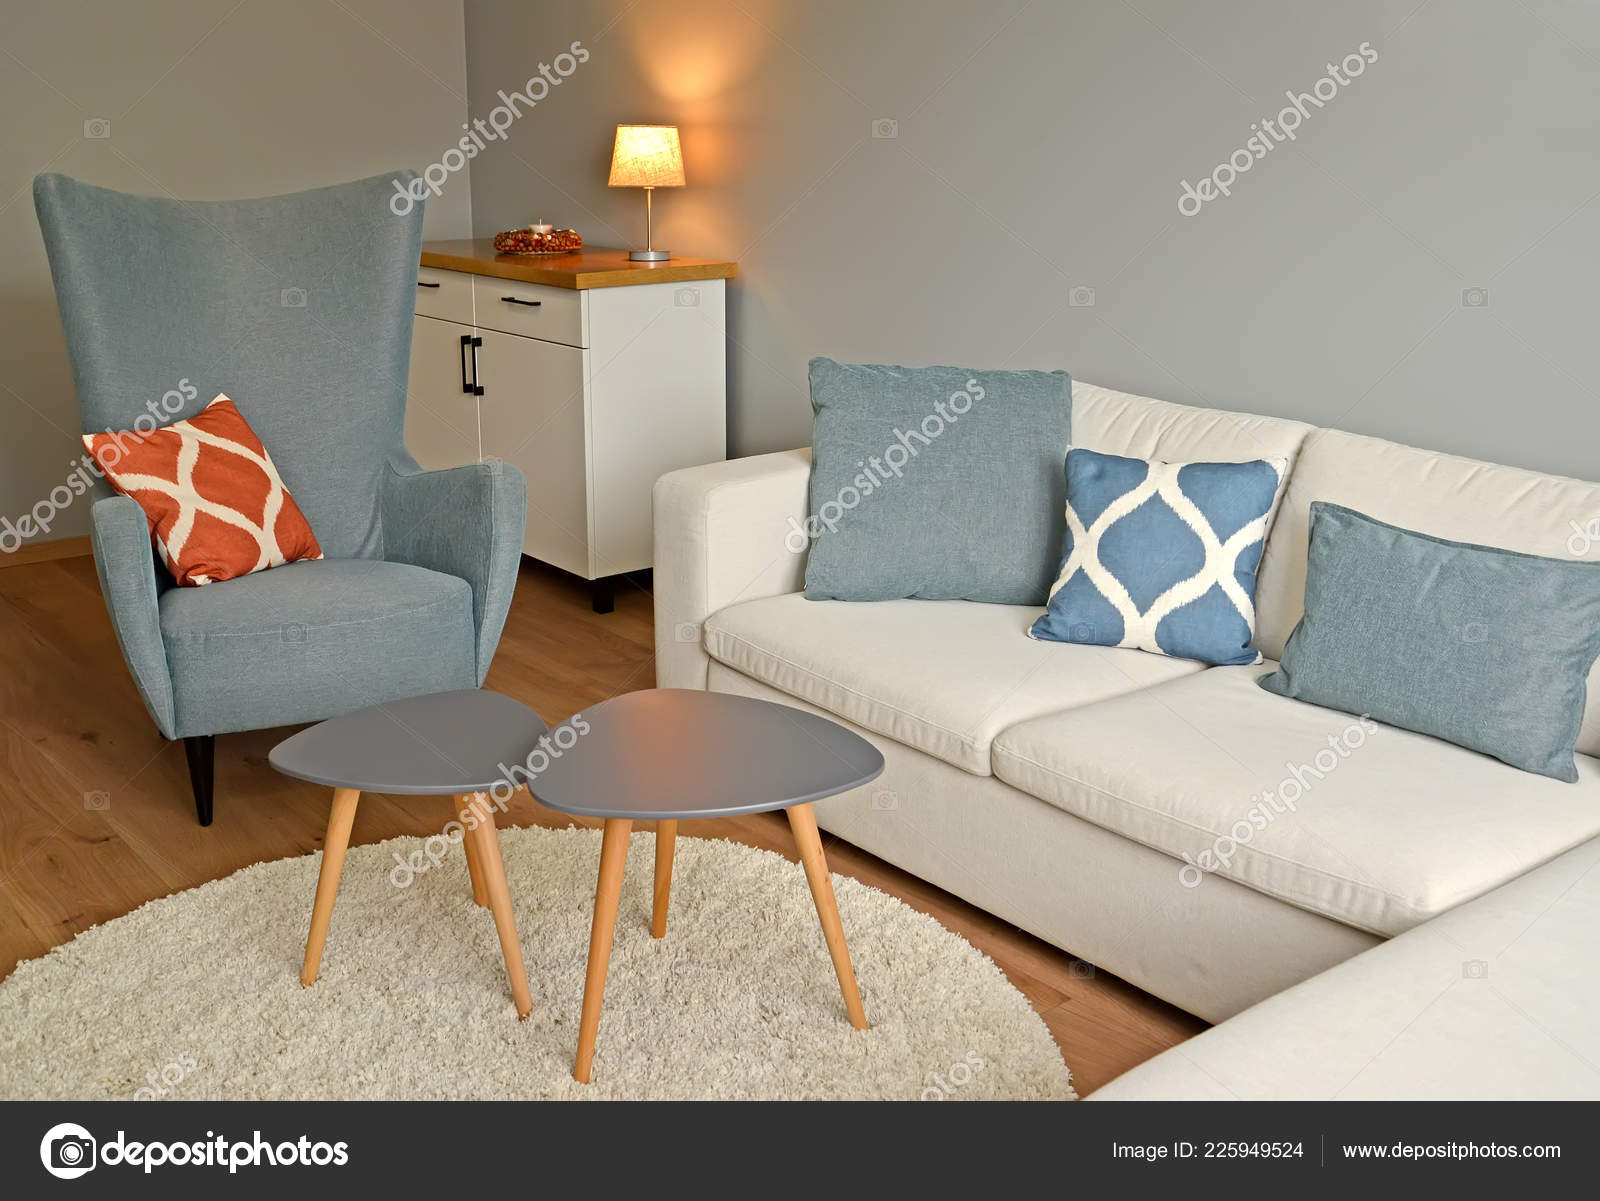 Sofa Chair Living Room Interior Scandinavian Style Stock Photo by ...